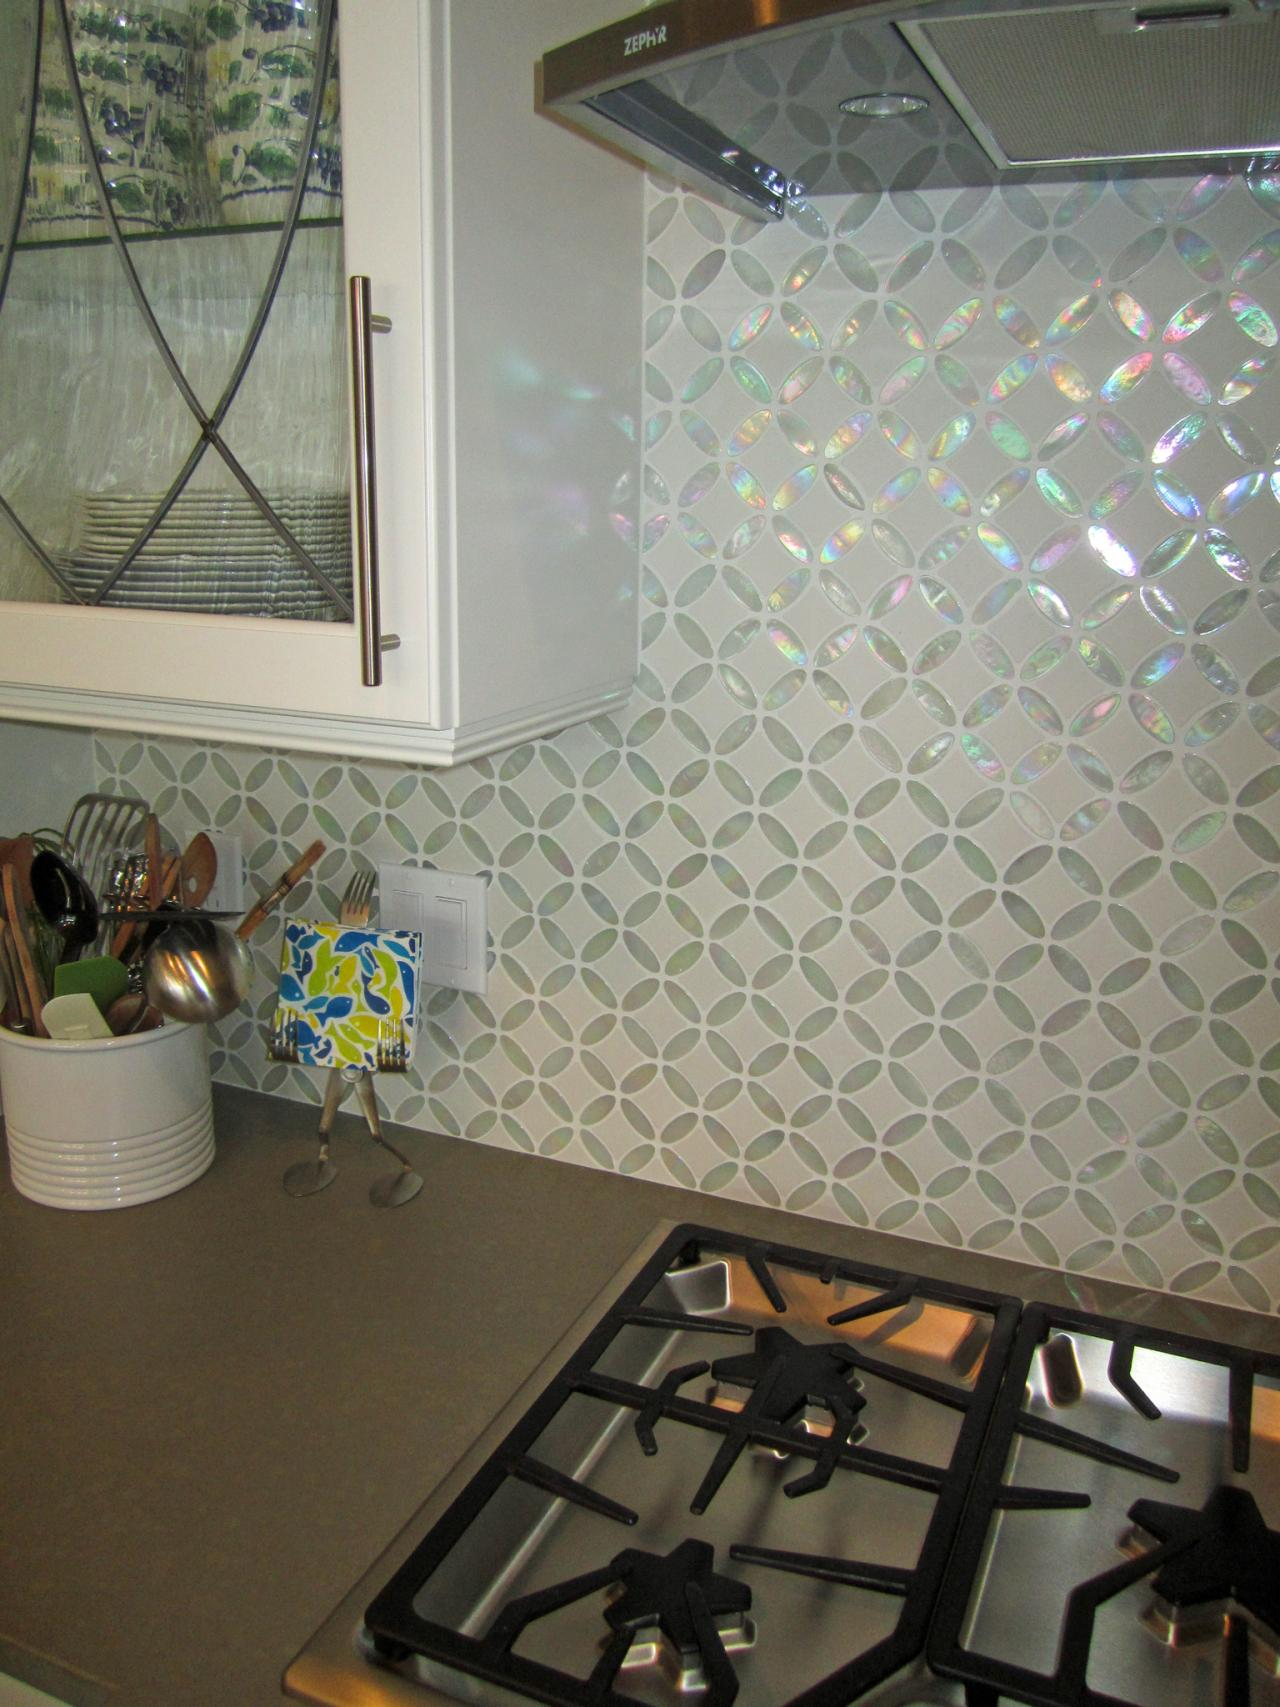 Photos hgtv Design kitchen backsplash glass tiles